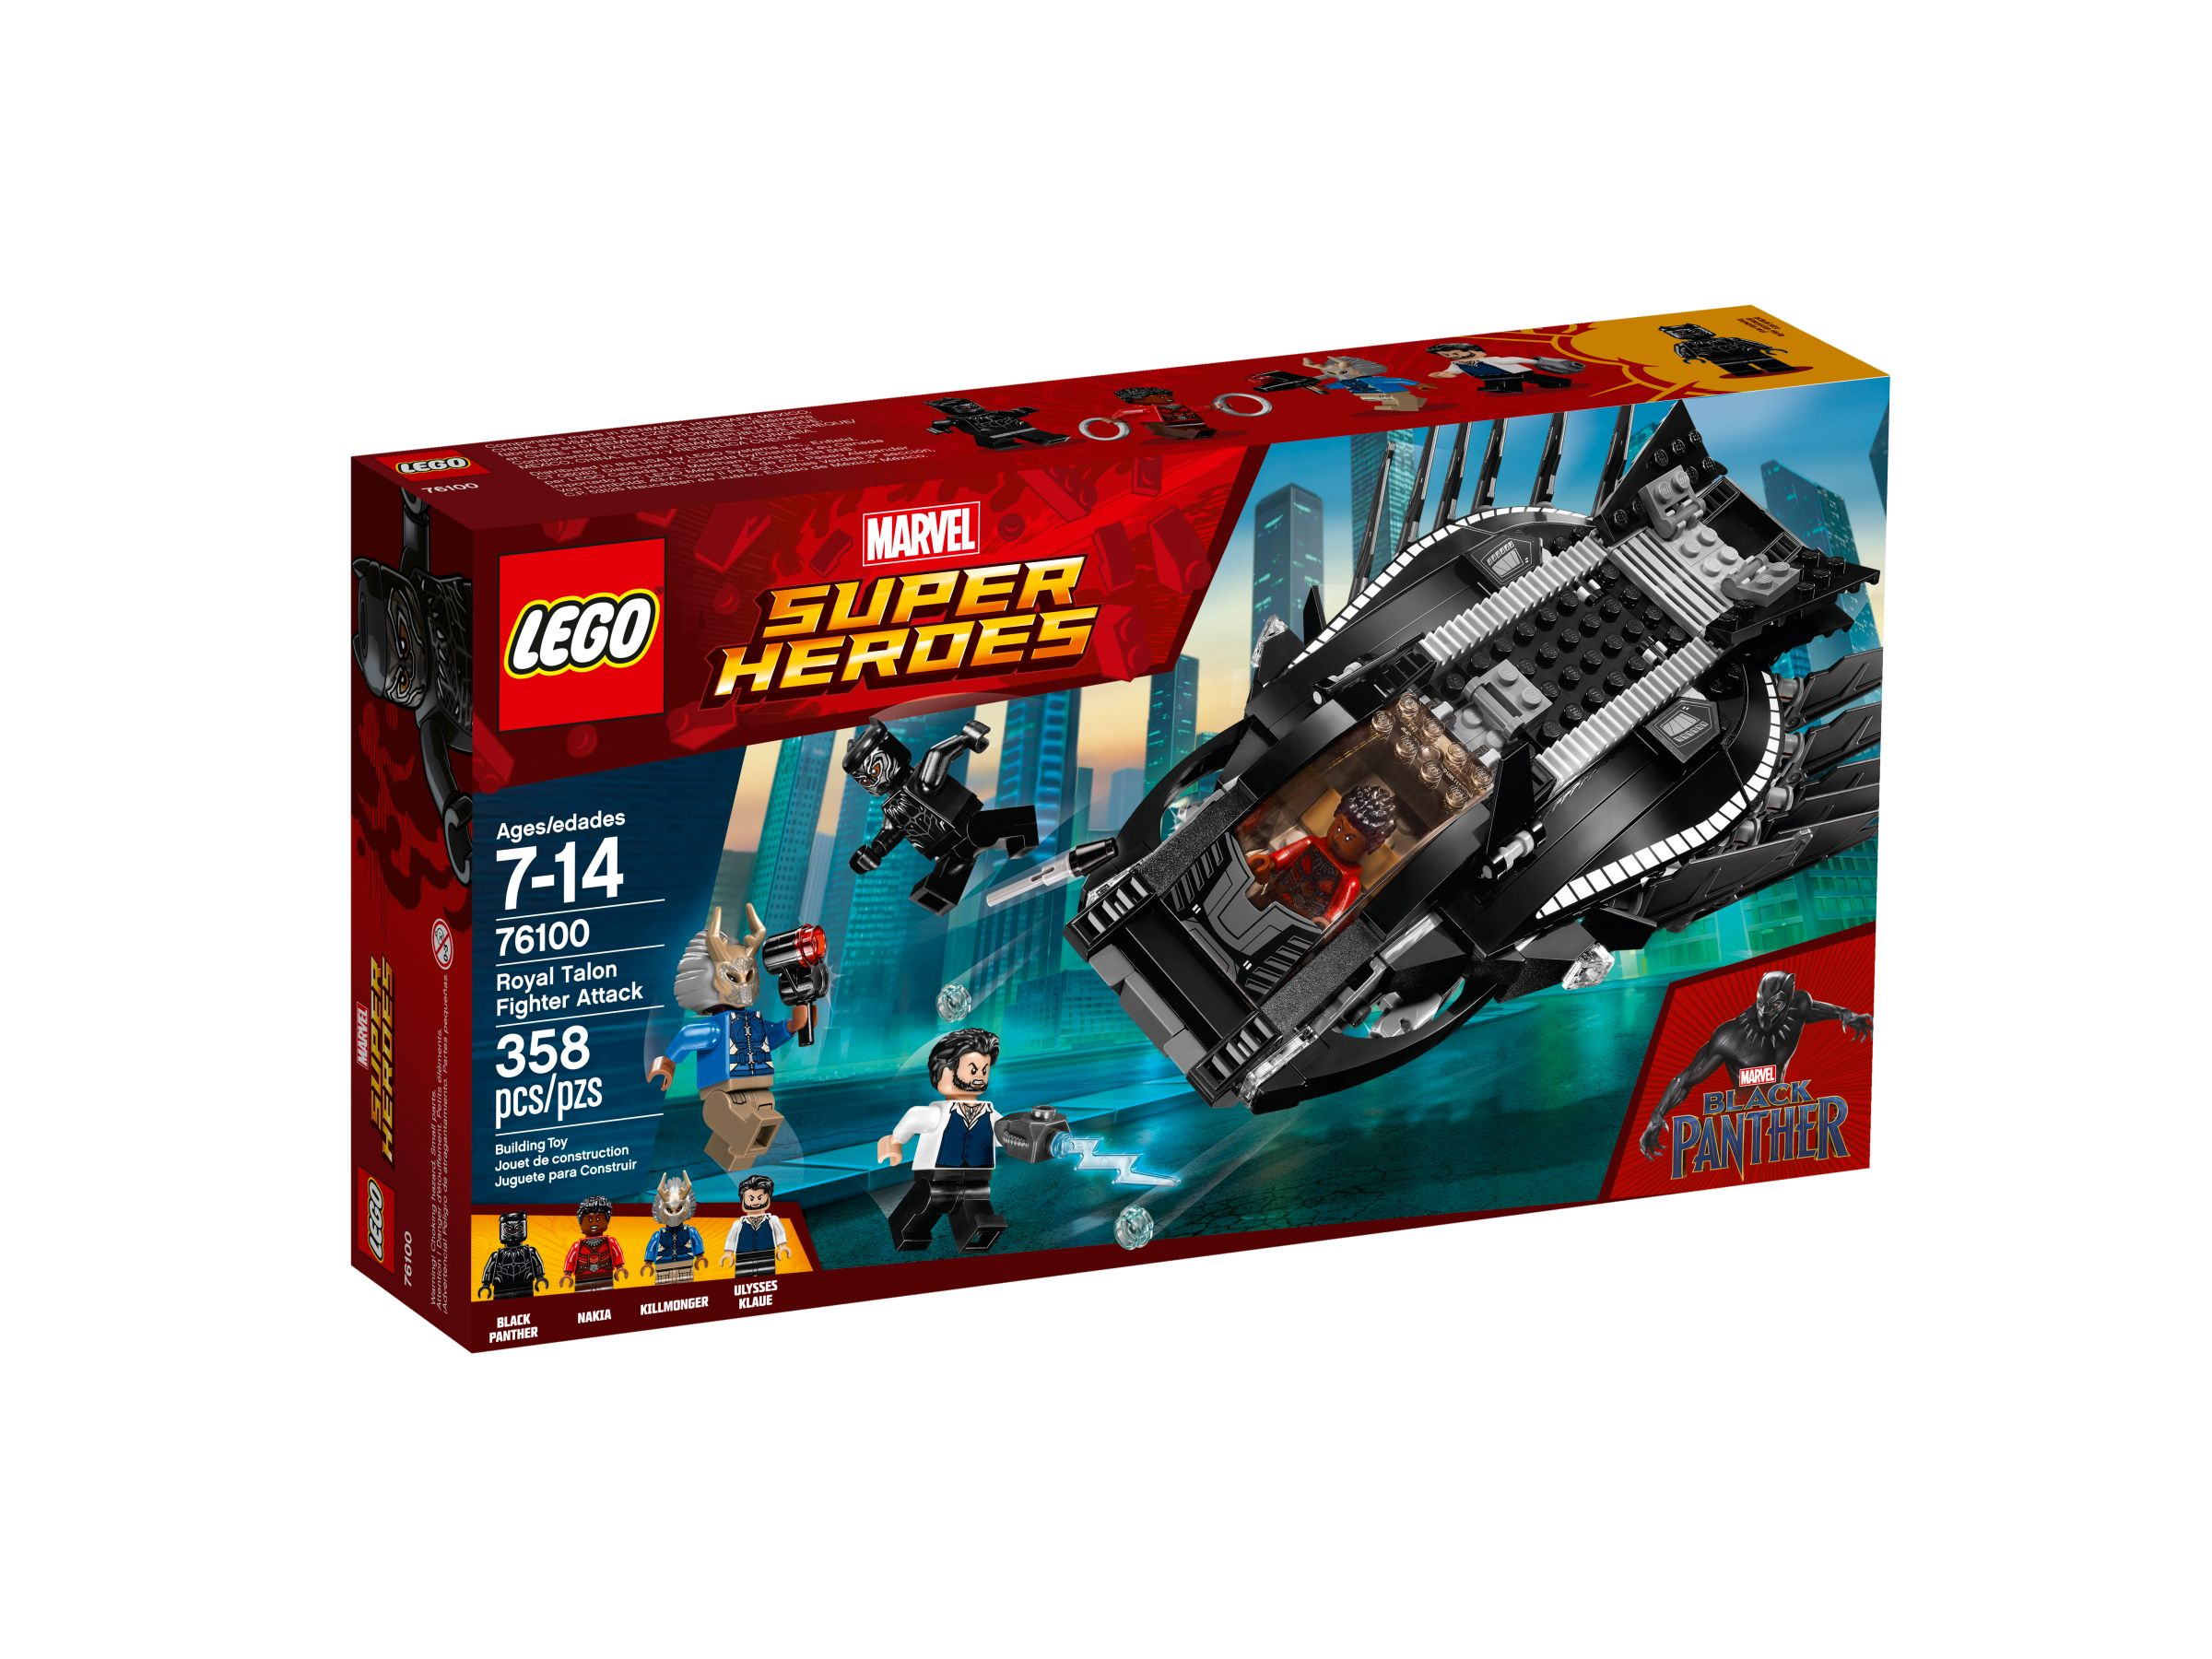 LEGO Super Heroes 76100 Royal Talon Attacke LEGO_76100_alt1.jpg